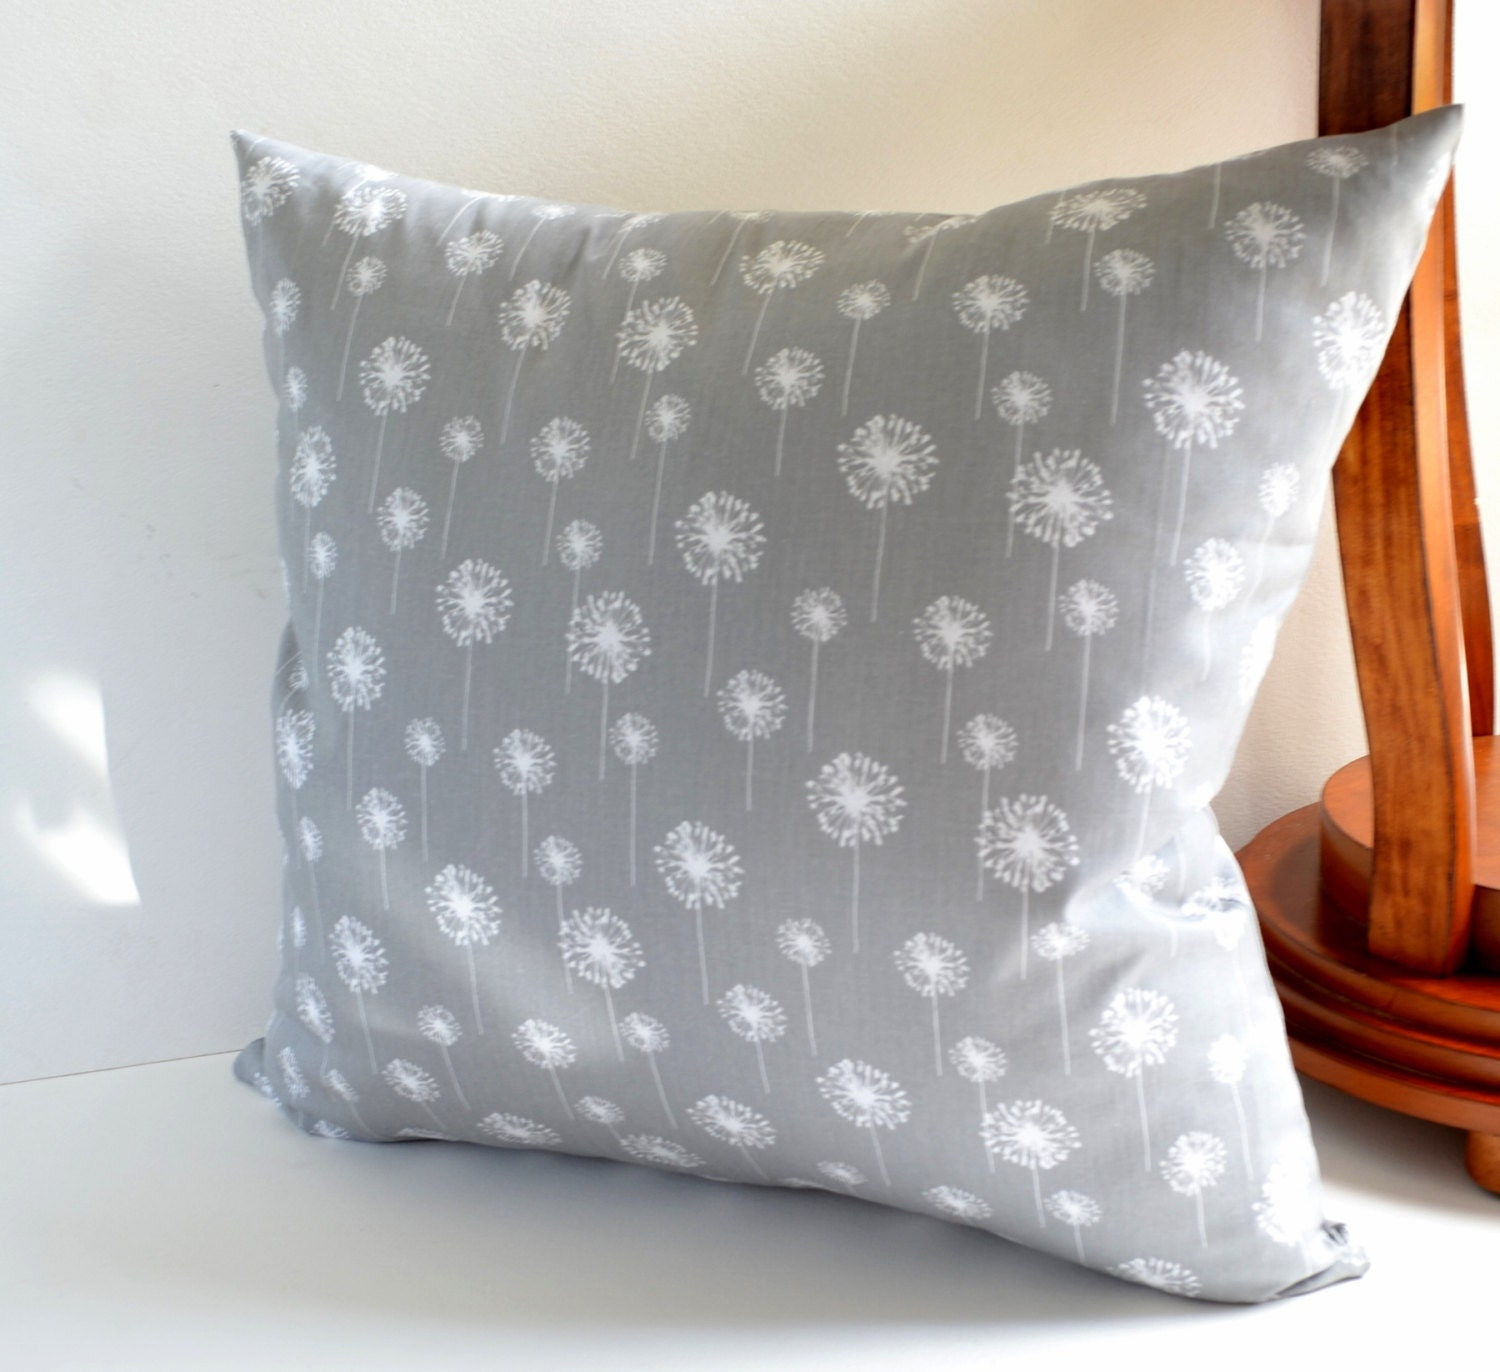 Throw Pillow Euro Sham : Pillow Cover Gray Decorative Throw Pillows Euro Sham Cushion